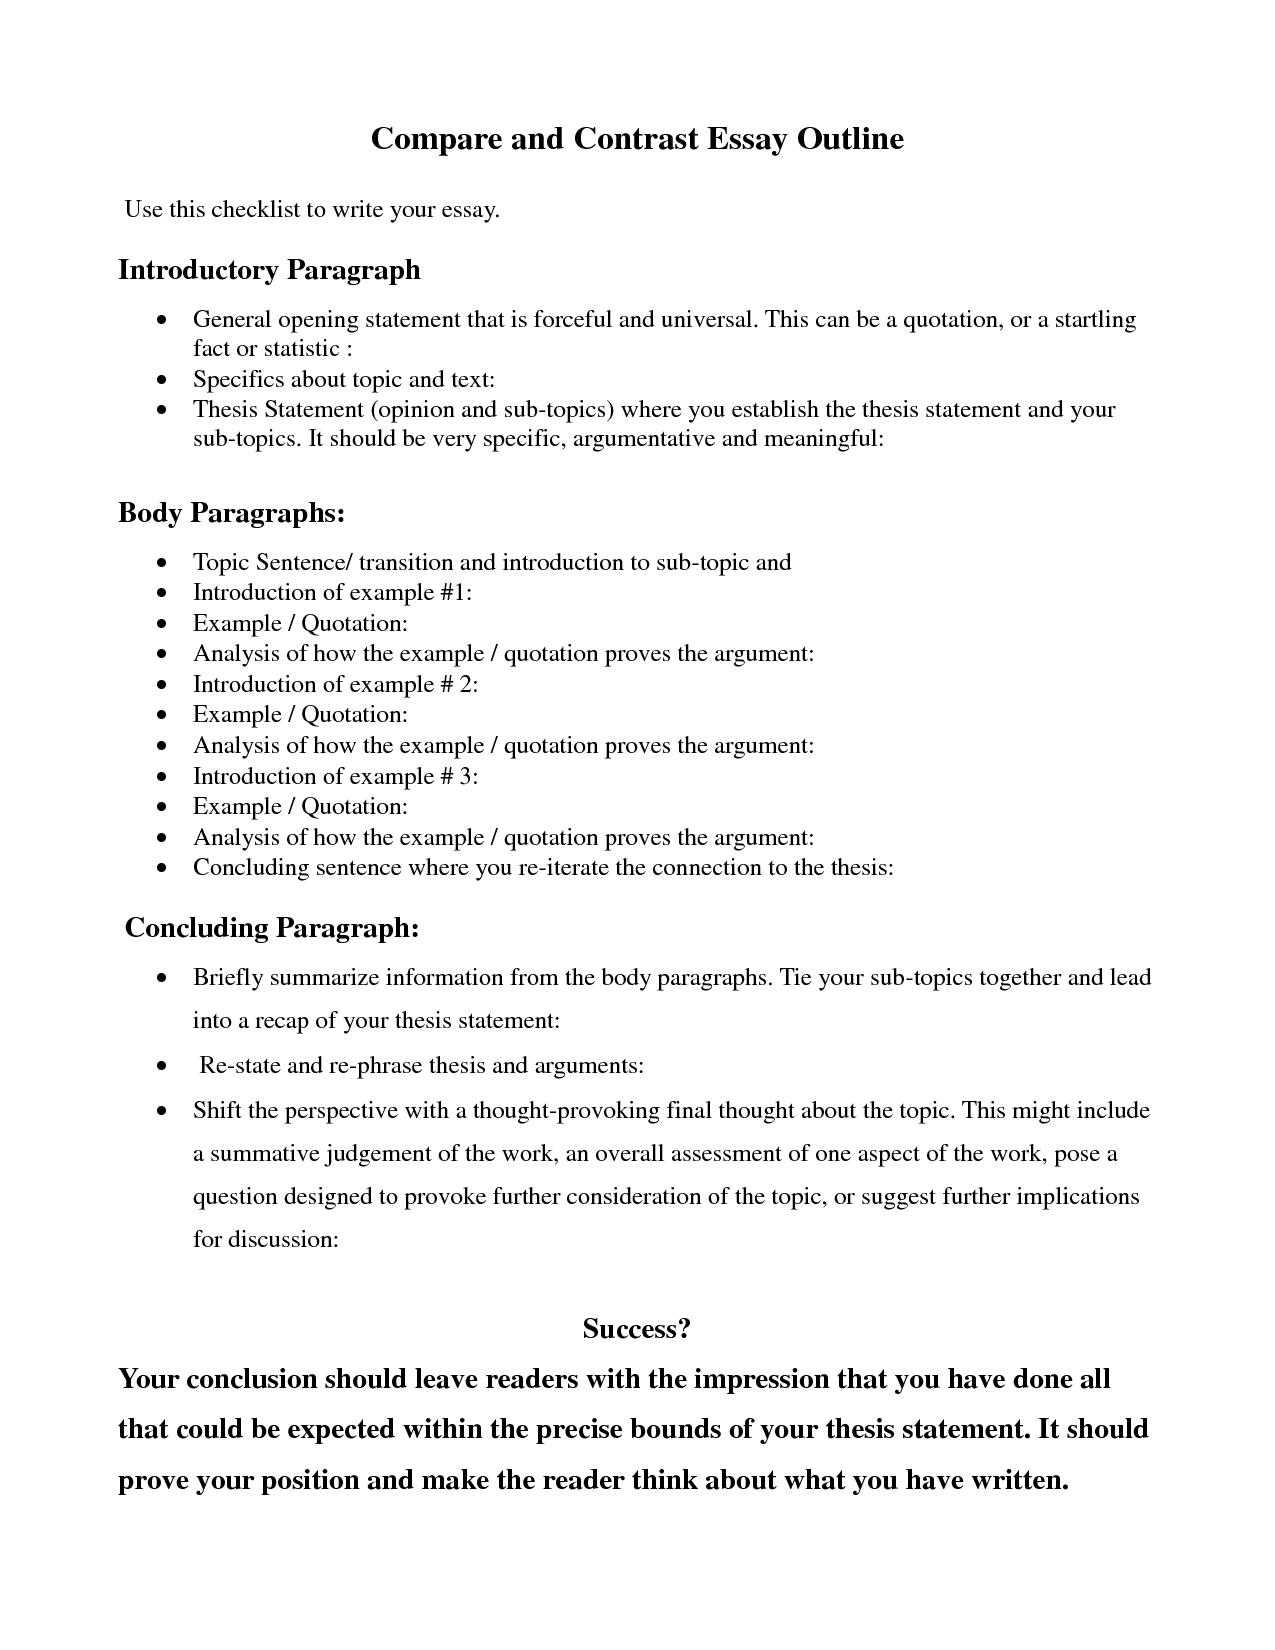 002 Compare And Contrast Cultures Essay Topics Stirring Full